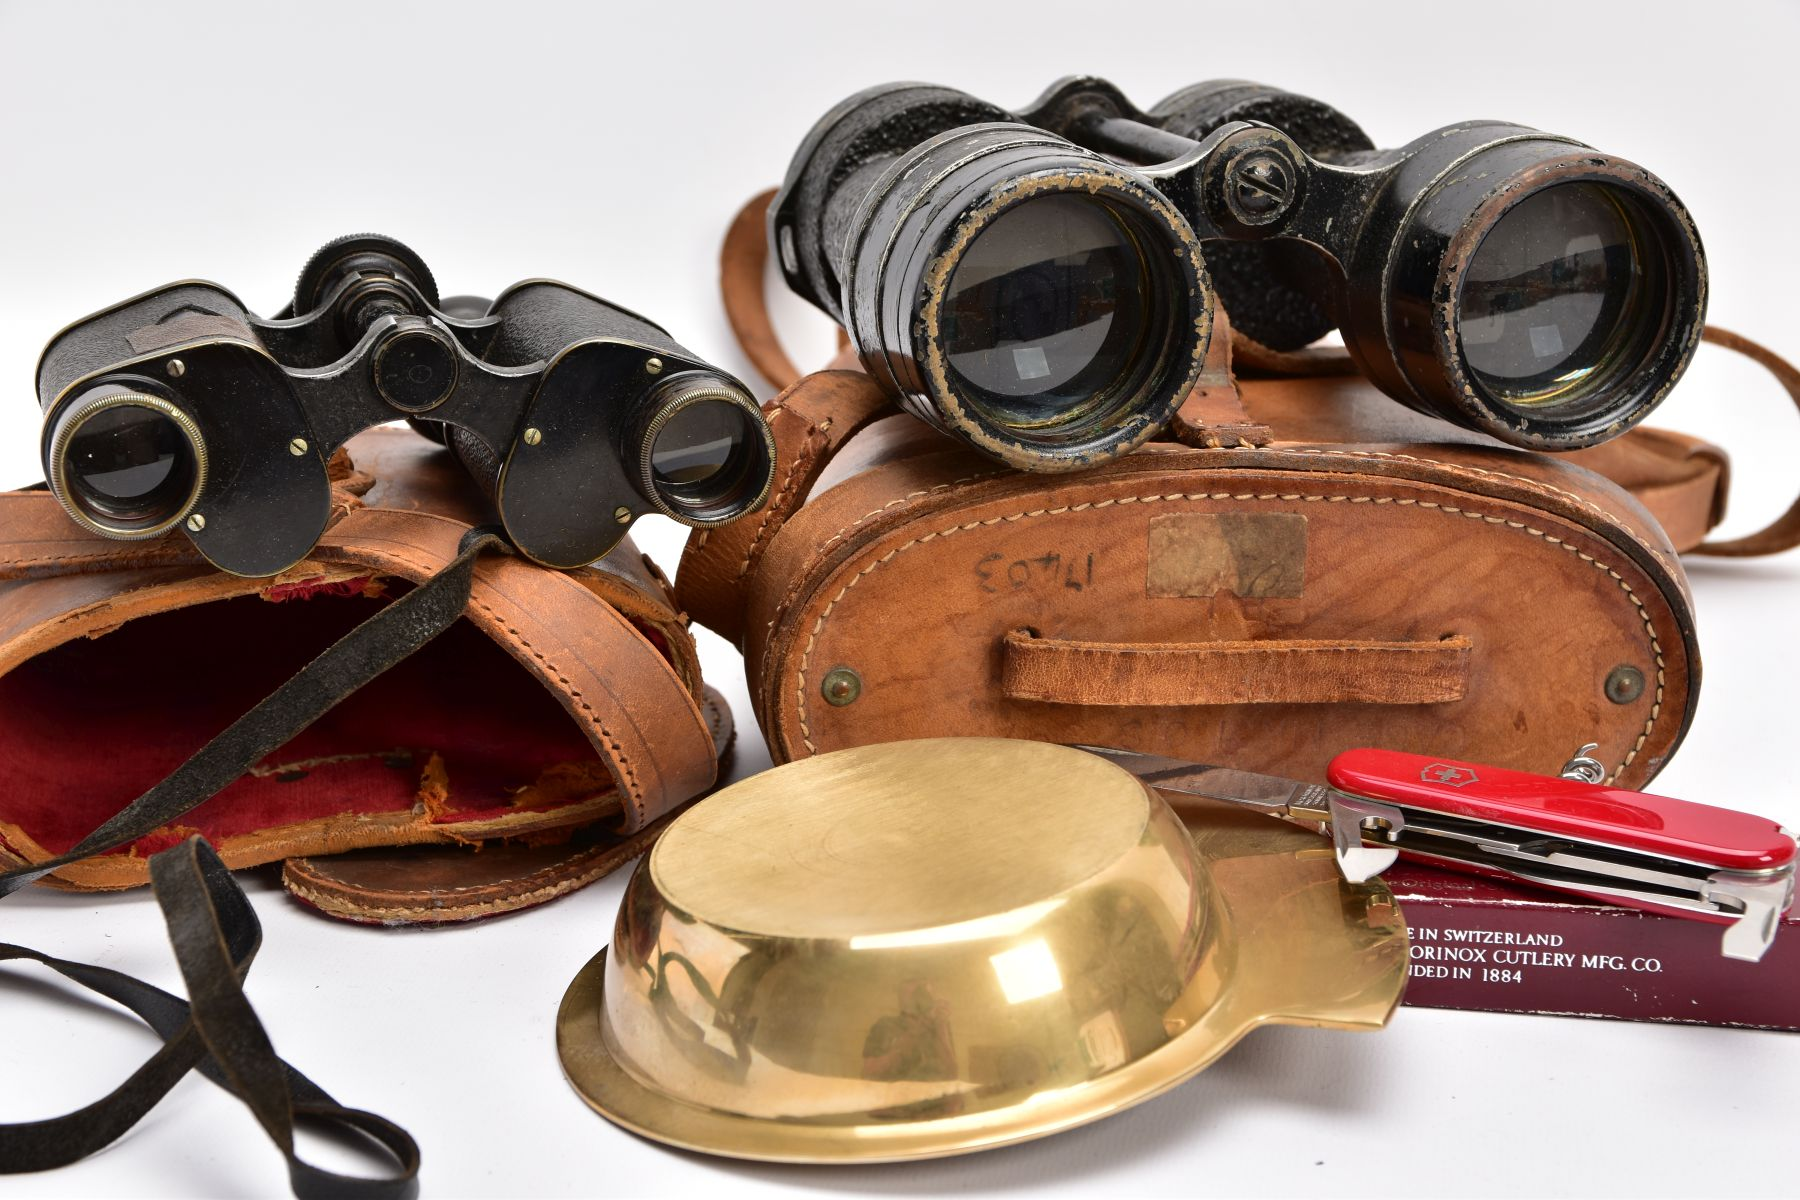 TWO BOXED PAIRS OF MILITARY BINOCULARS, one box marked Bino prism No.5 MKI, the other pair is crow - Image 8 of 8